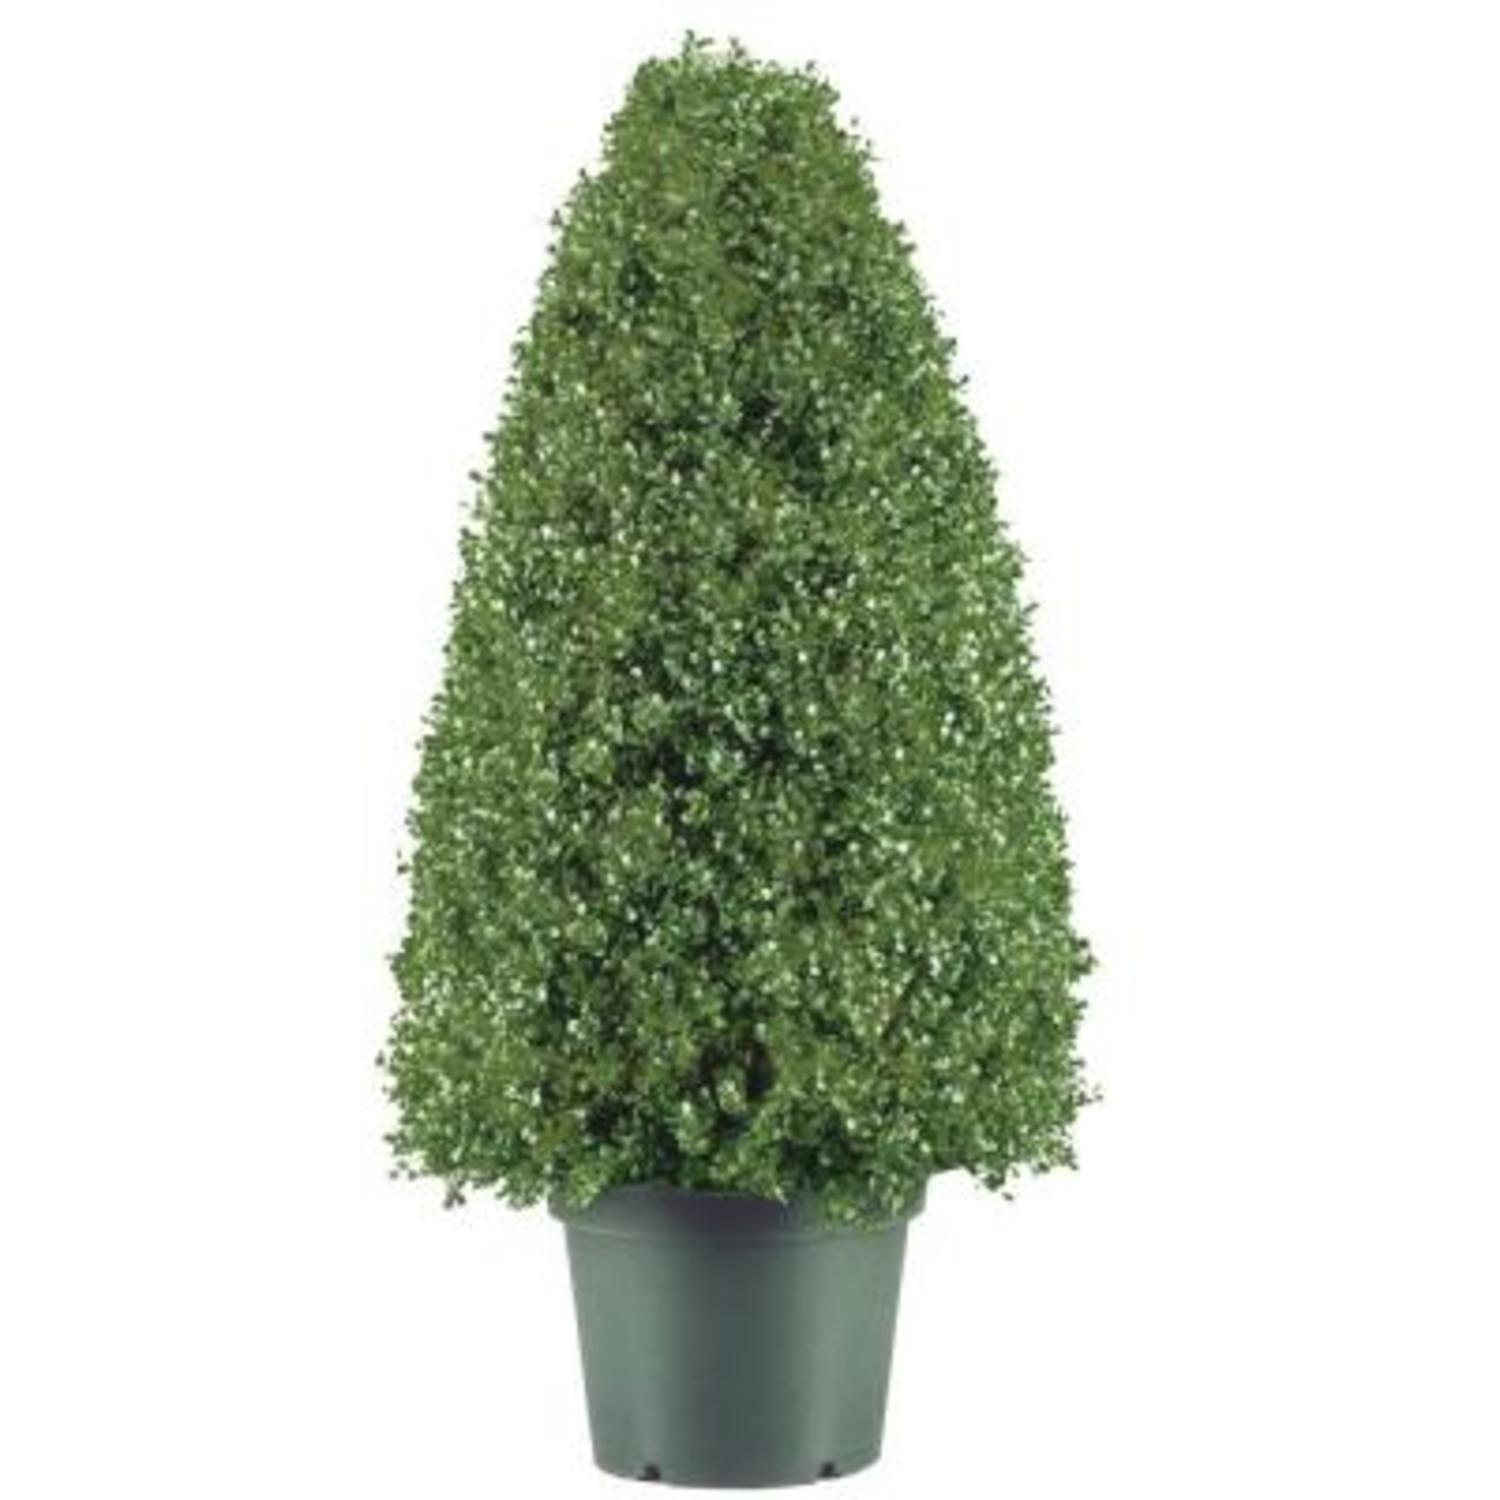 "30"" Potted Artificial Boxwood Topiary Tree"